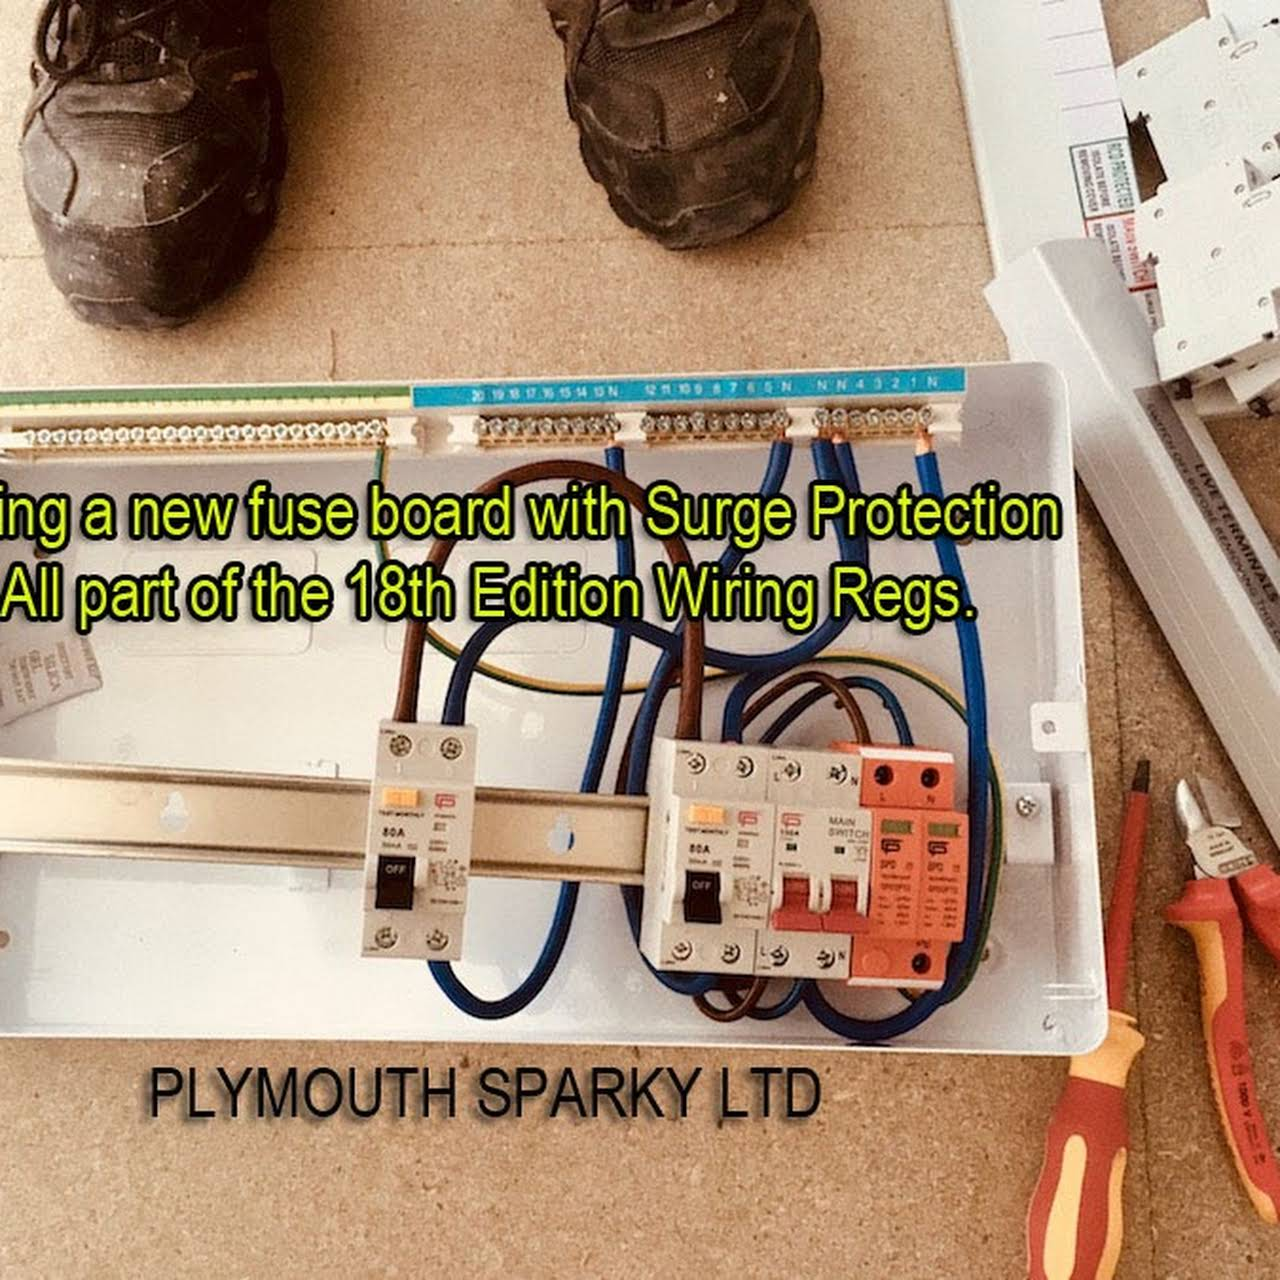 Electrician Plymouth Sparky - Electrician on electrical box diagram, electrical power cable, 3 to 4 electrical box, electrical wiring box, electrical extension cord box, electrical fuses small to largest, electrical valve box, electrical safety signs, circuit breaker box, main electrical box, electrical panel box, electrical inductor box, electrical distribution box, wiring a 3 gang switch box, electrical power box, electrical switch box, solid state relay box, electrical chassis control module, electrical wiring details, electrical box cut out,